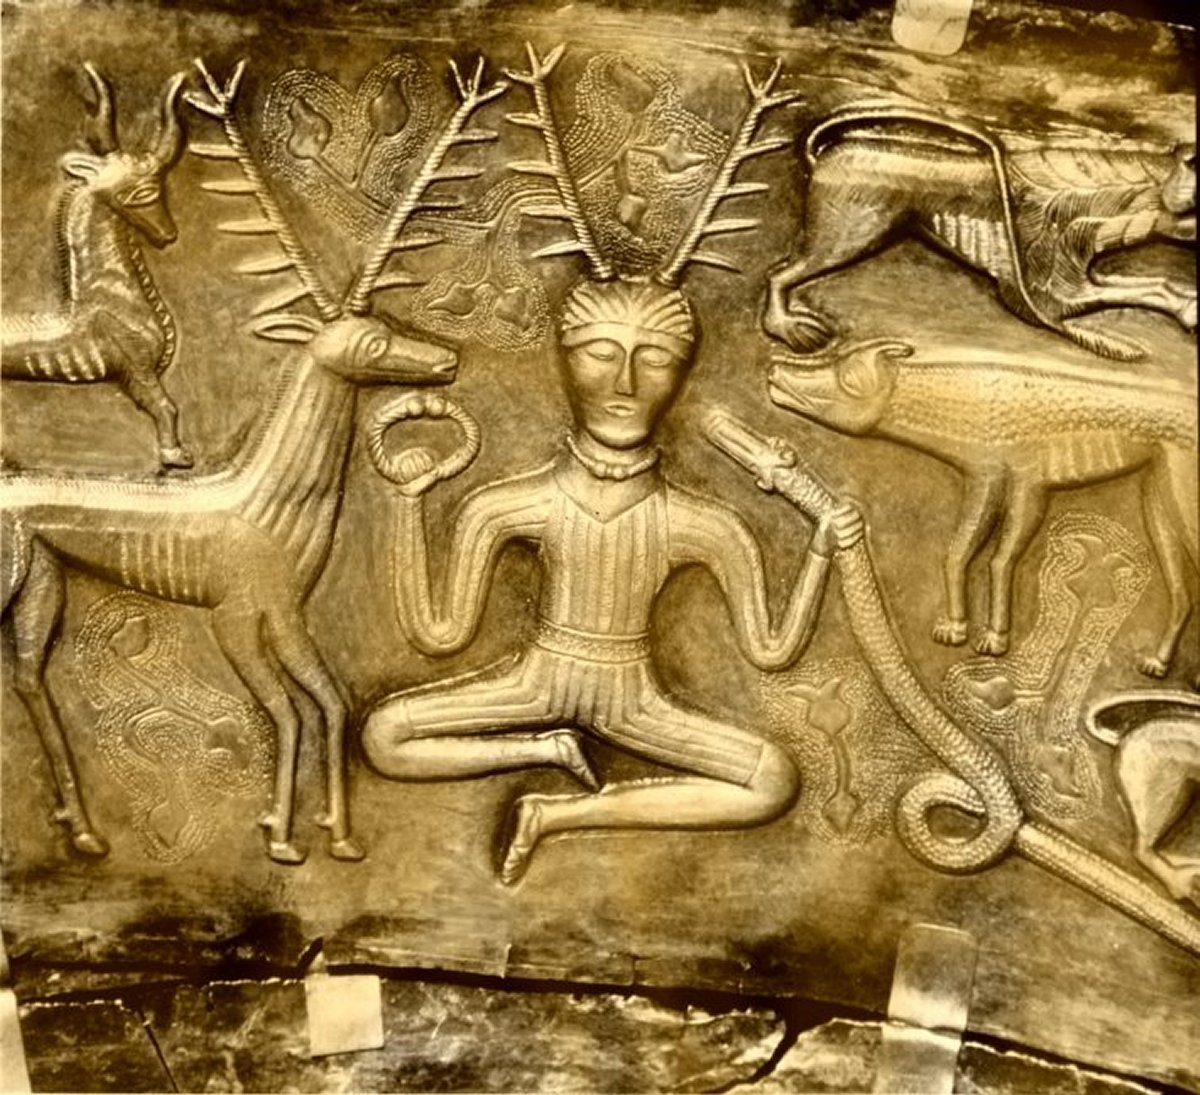 Ancient Celtic figure of Cernunos, showing him as Shaman, Yogi, and Prajapati, the original tribal Shiva, 'Lord of the Creatures.'